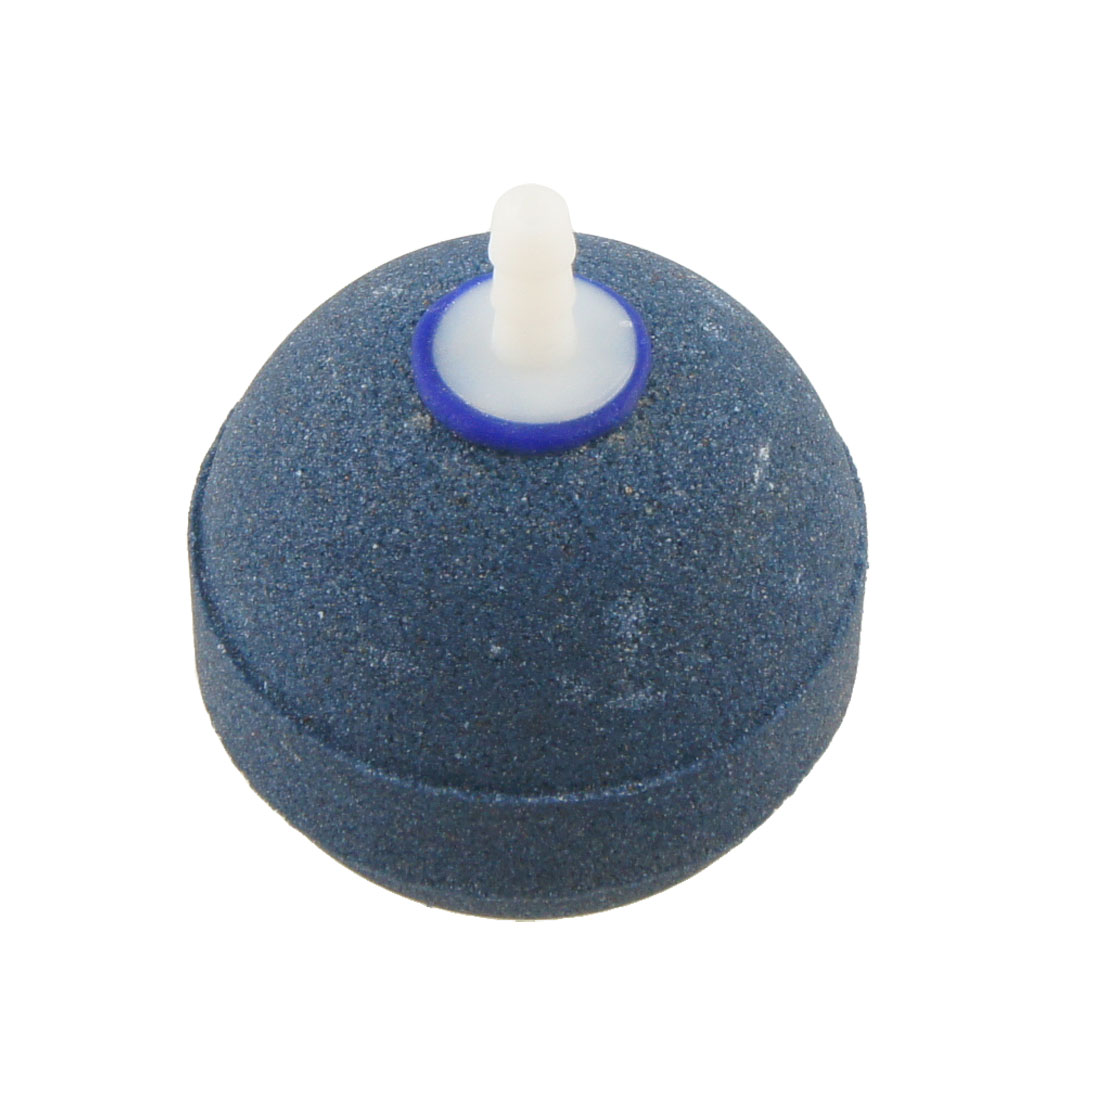 5cm Blue Mineral Bubbles Air Stone Airstone for Aquarium Fish Tank